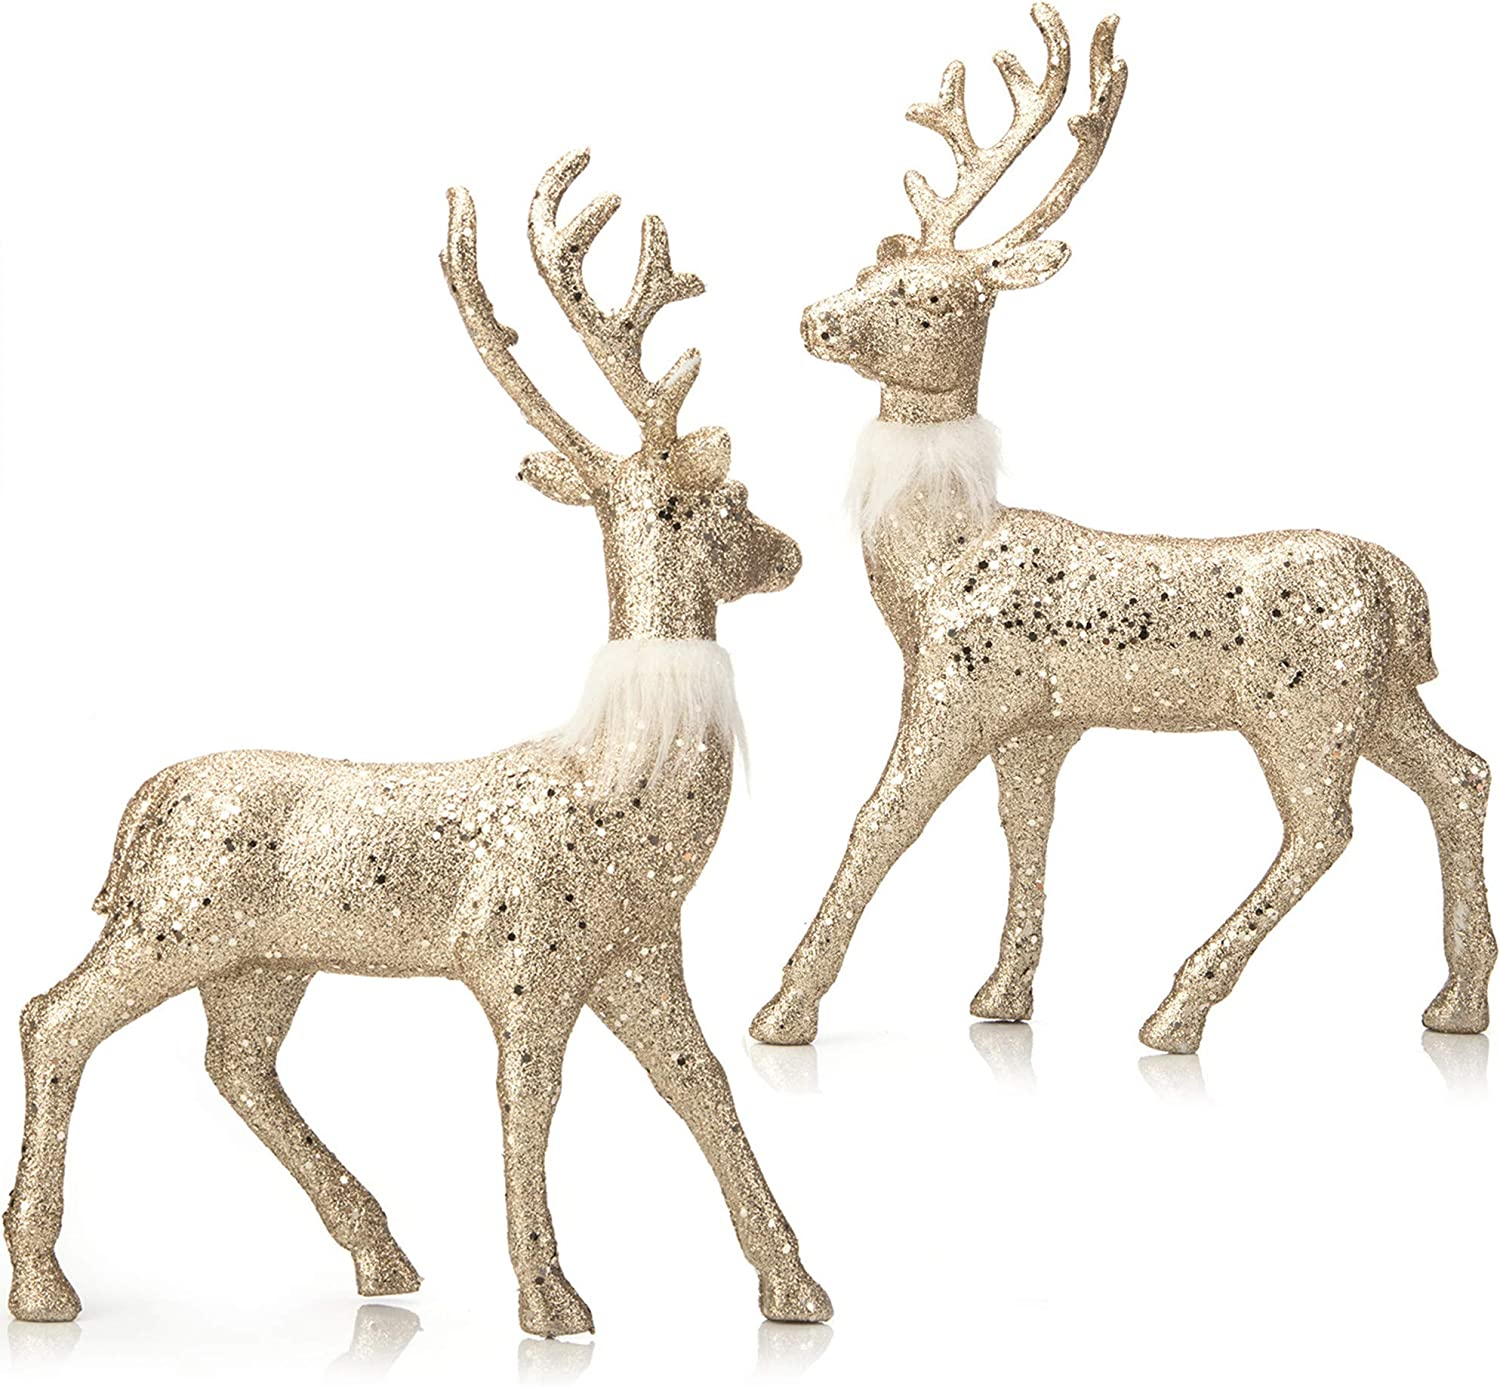 """iPEGTOP 2 Pcs Glitter Reindeer Decor Christmas Standing Deer Figurines, 12.6"""" X 9"""" Holiday Decorations Craft Gift Christmas Ornaments, Champagne Gold"""